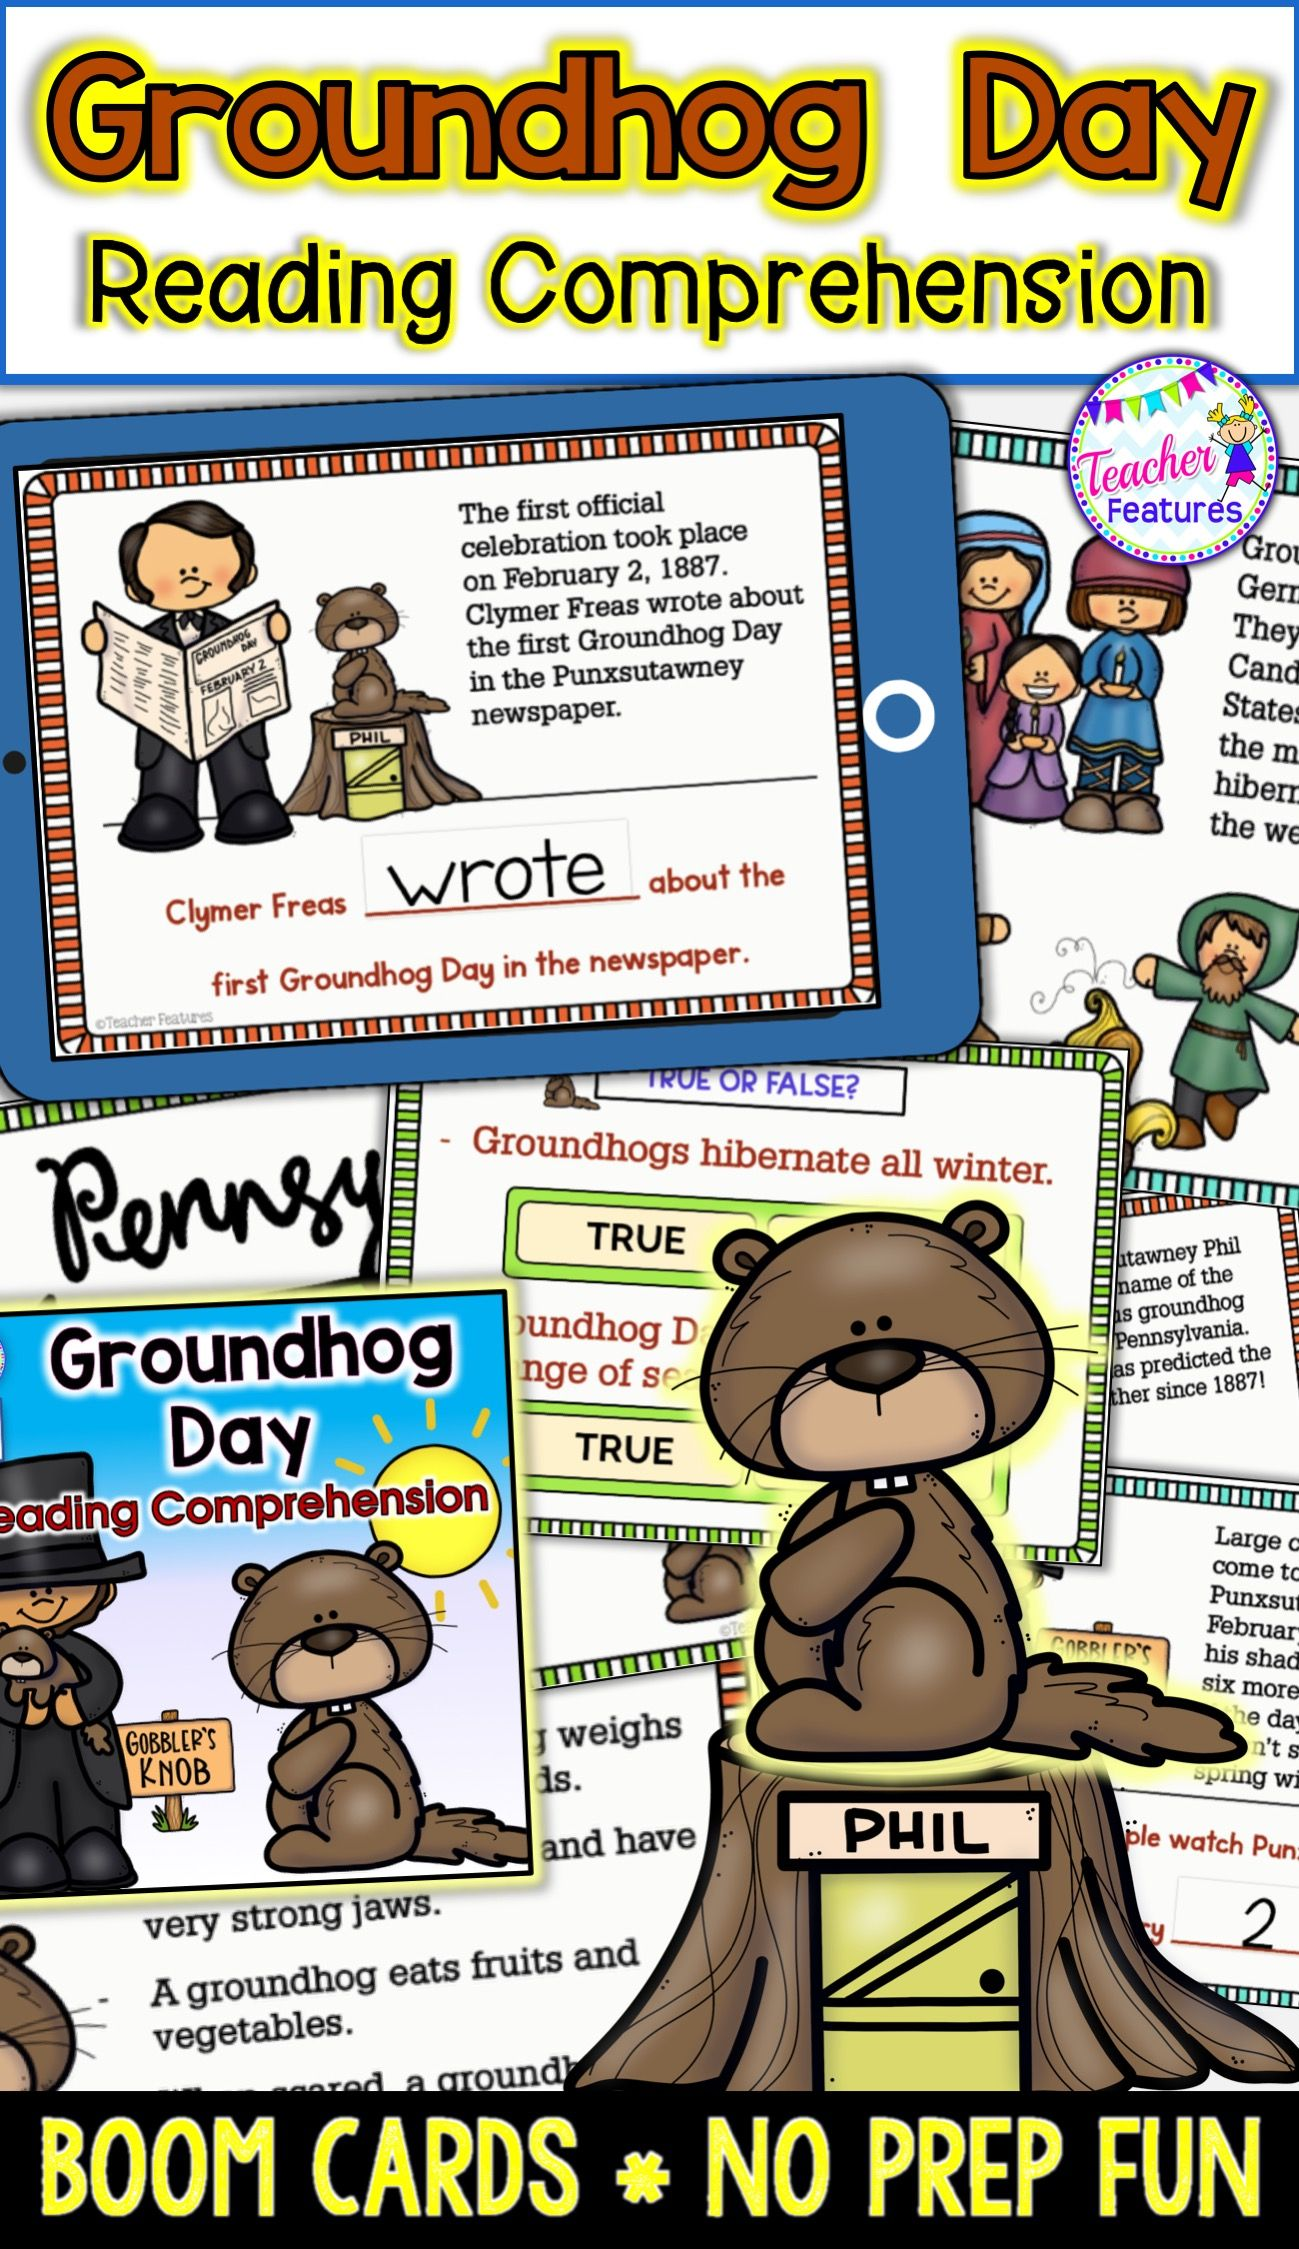 Groundhog Day History With Reading Comprehension Questions